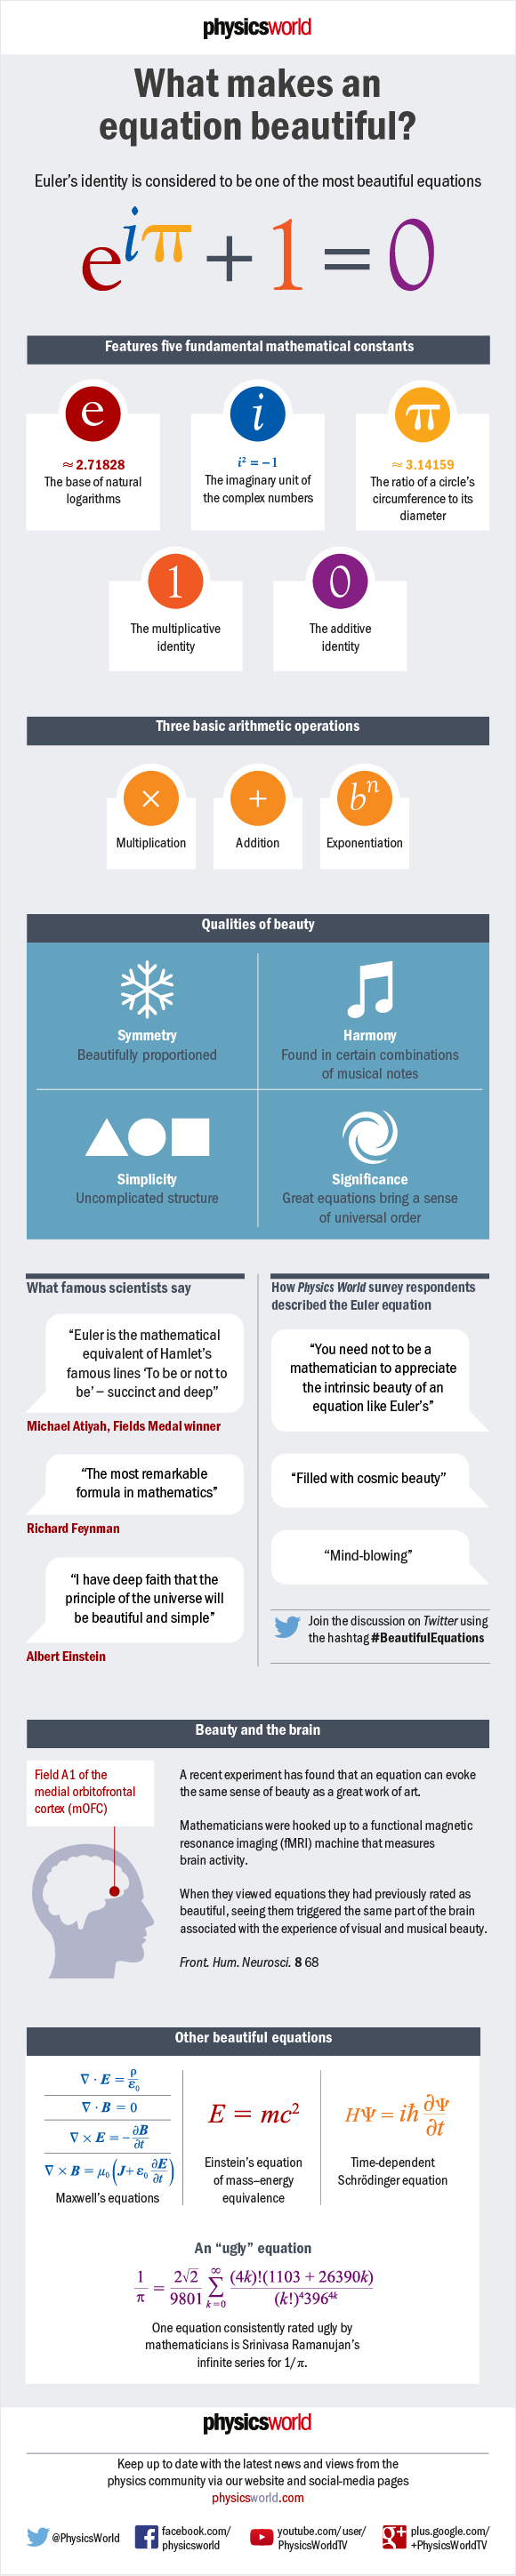 Infographic about beautiful equations | Personal Preferences ...